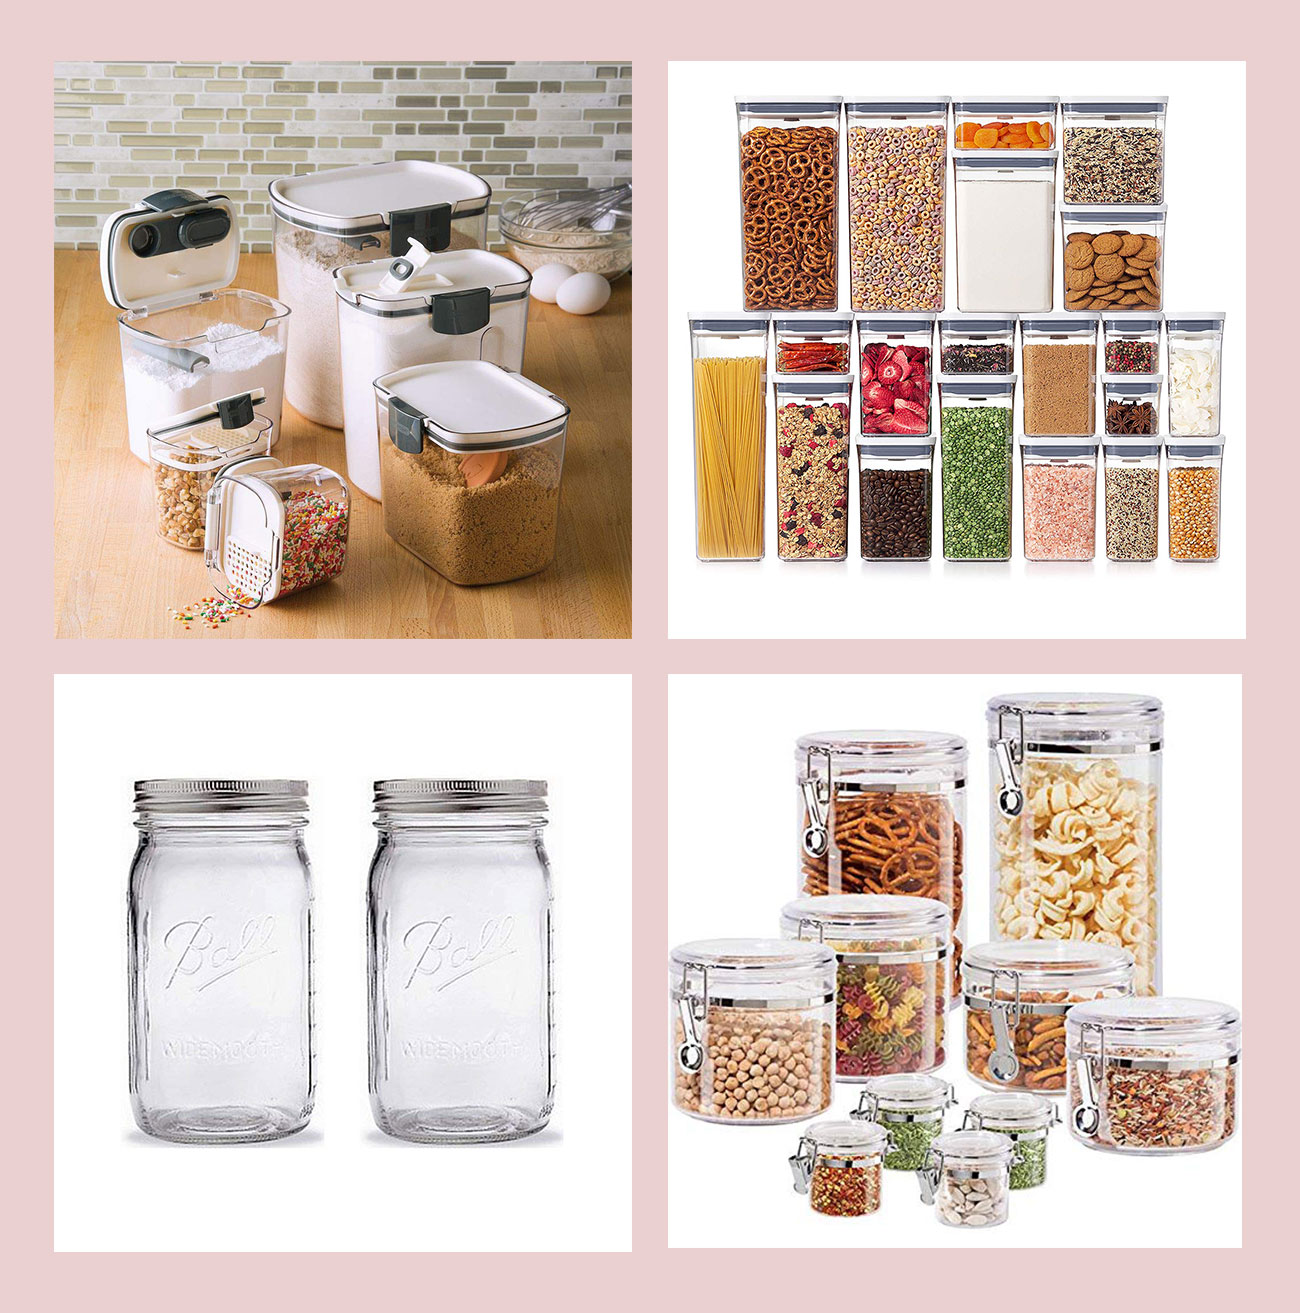 food storage items